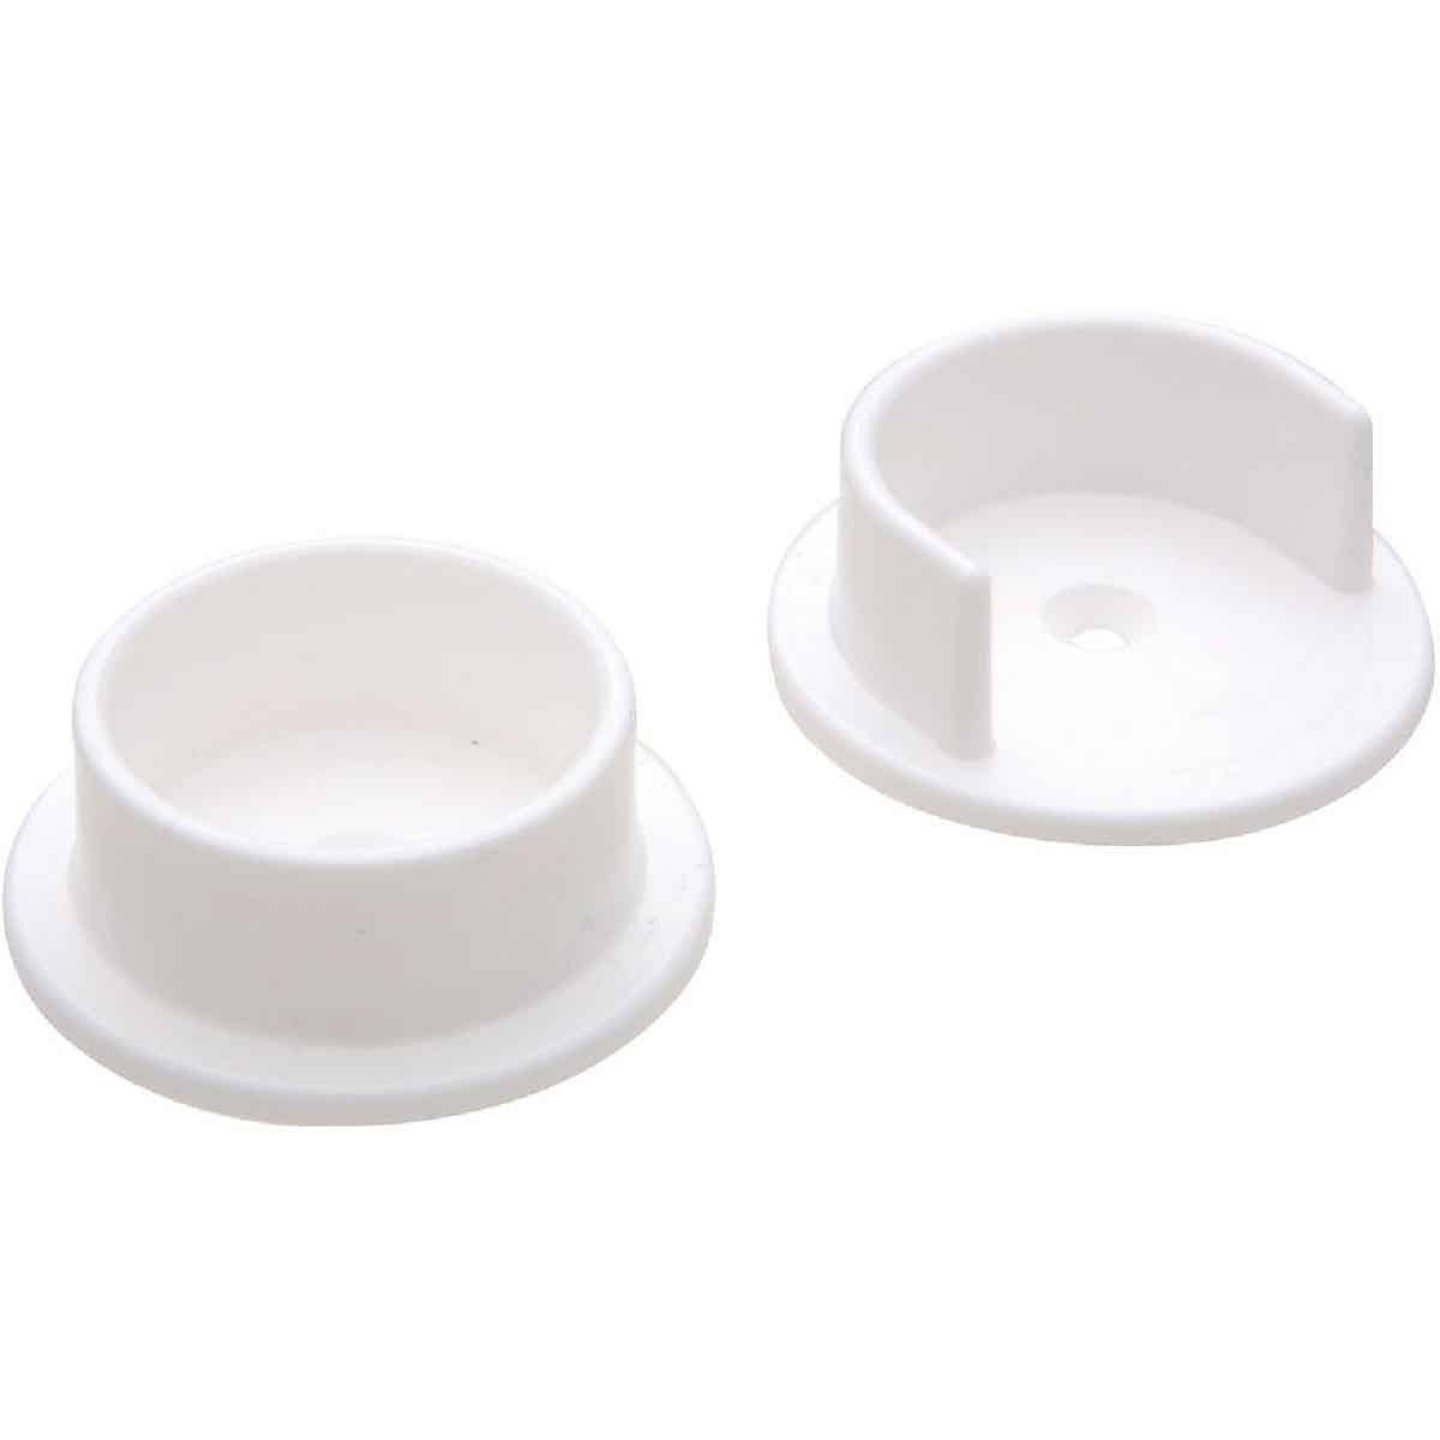 National 1-3/8 In. Plastic Closet Rod Socket, White (2-Pack) Image 1